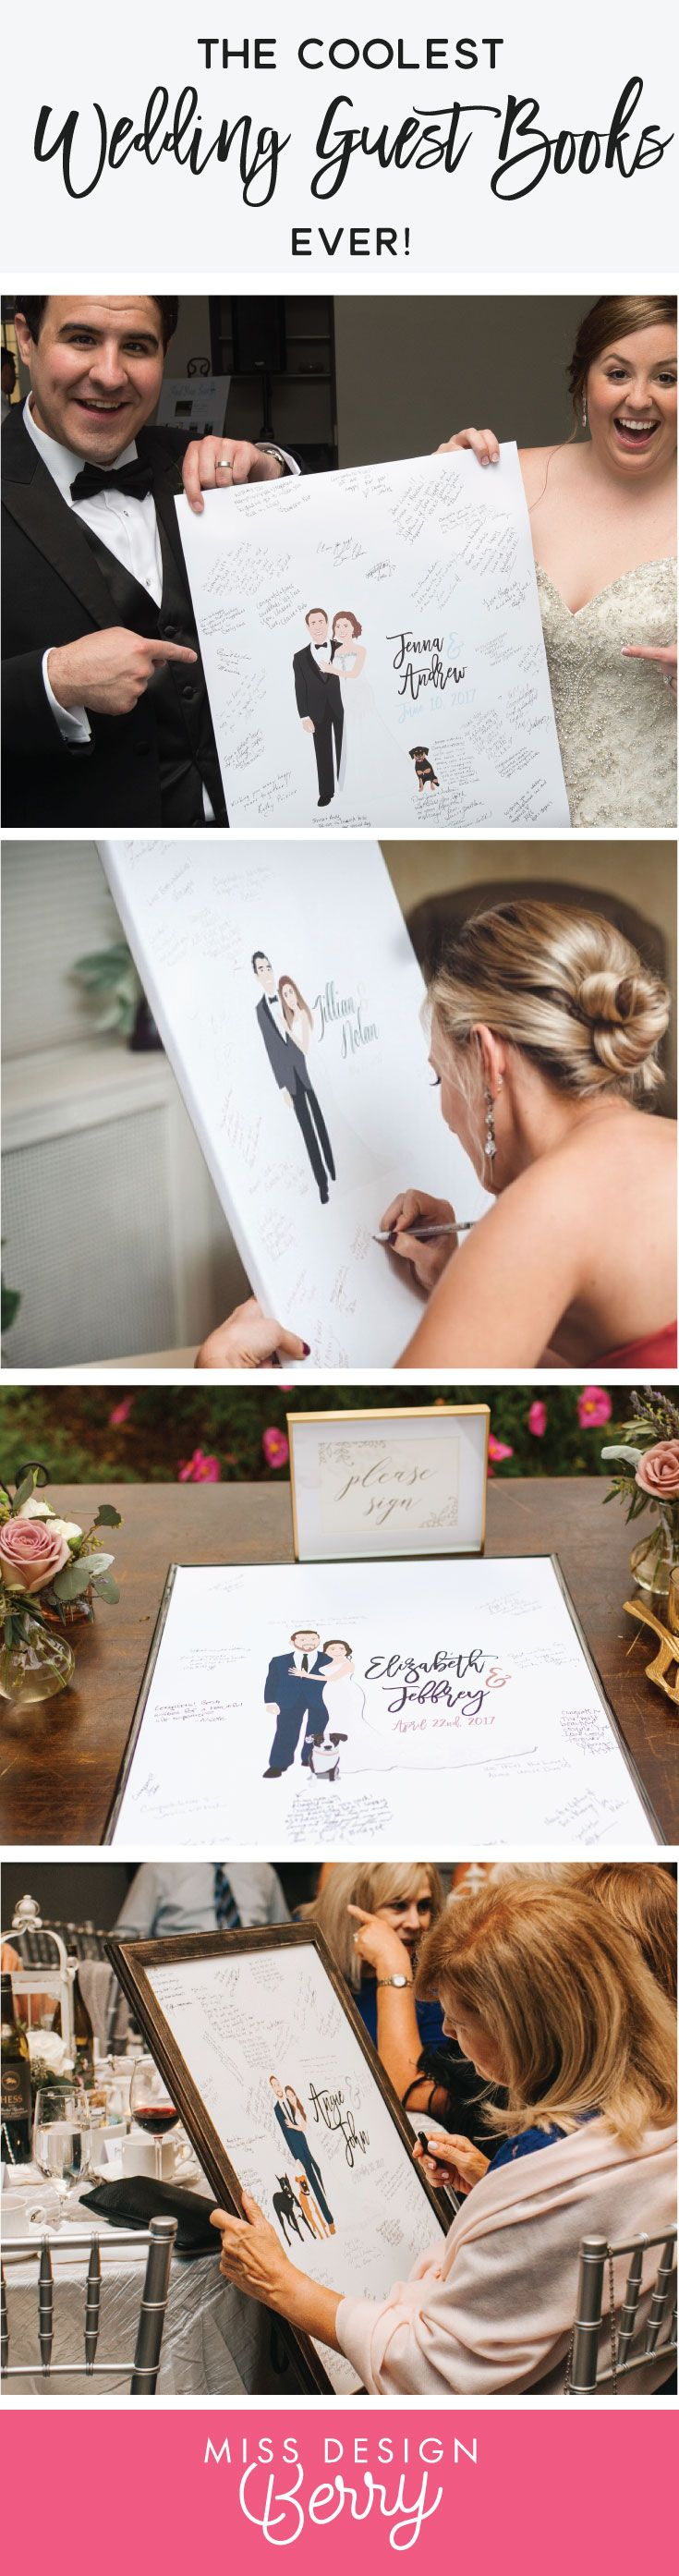 The COOLEST wedding guest book alternatives EVER. Miss Design Berry custom illustrates the portrait to look JUST like you will on your wedding day! Your wedding guests will be blown away!